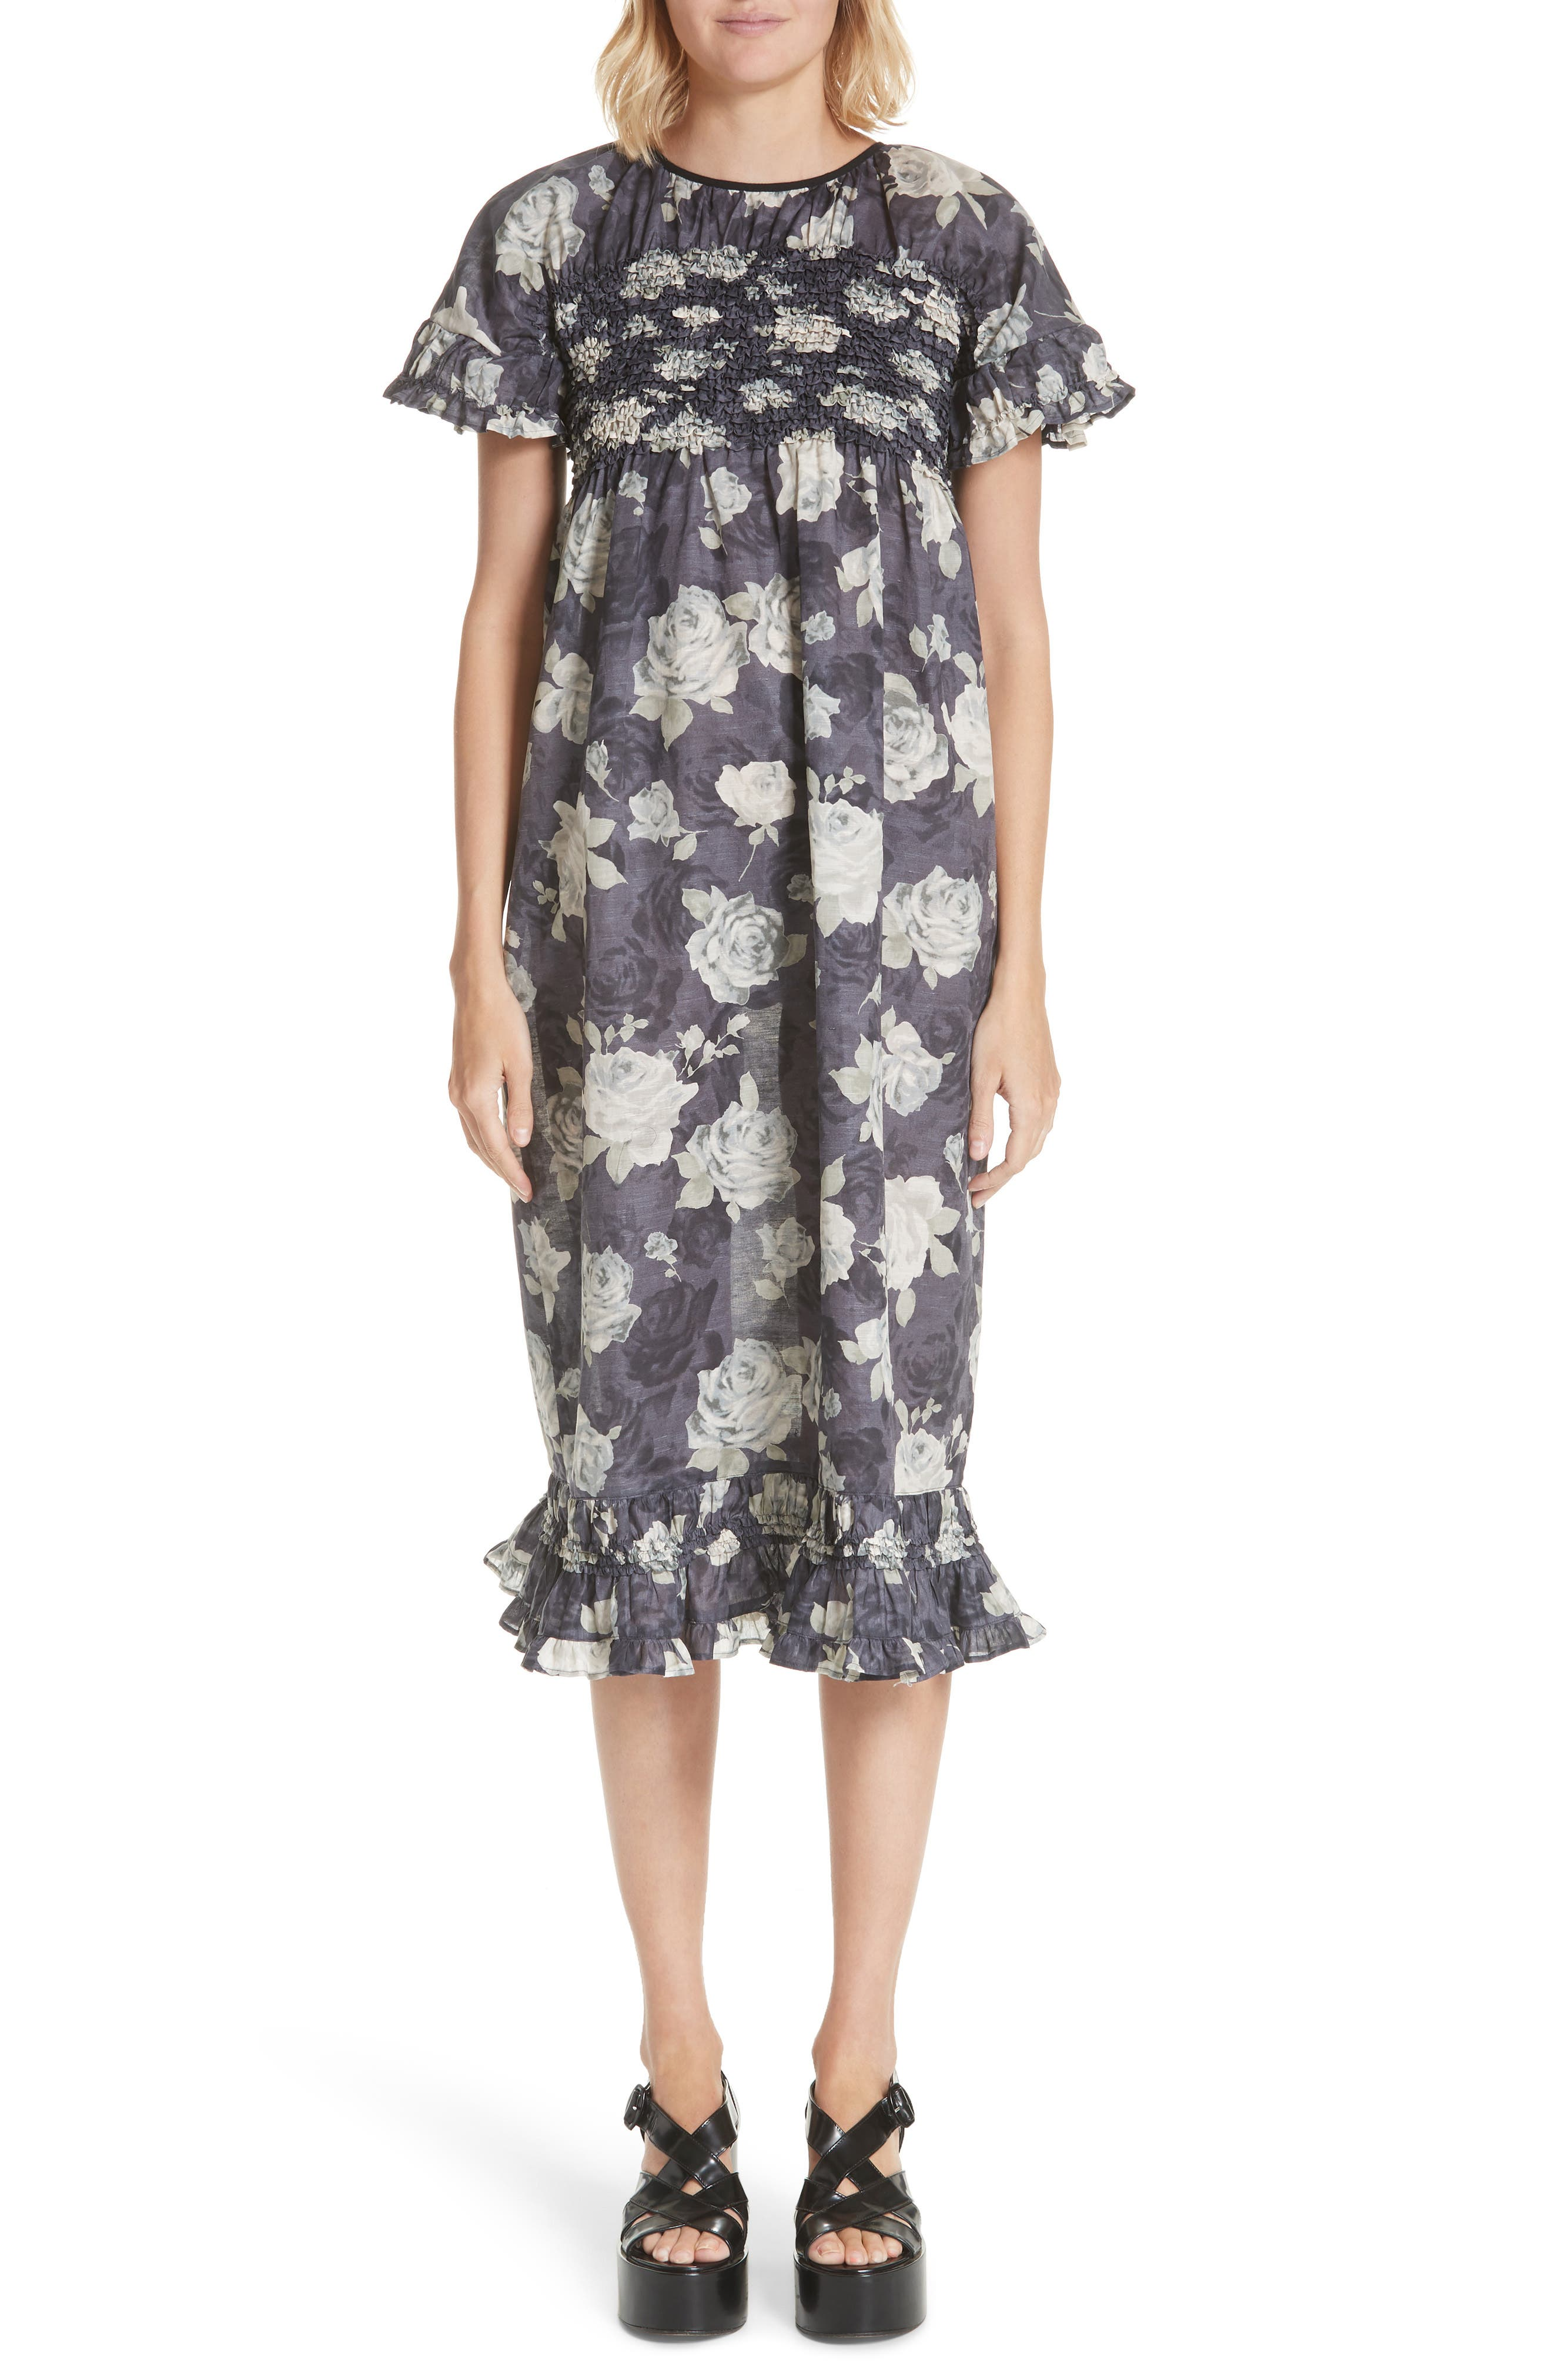 Alternate Image 1 Selected - Tricot Comme des Garçons Rose Print Dress